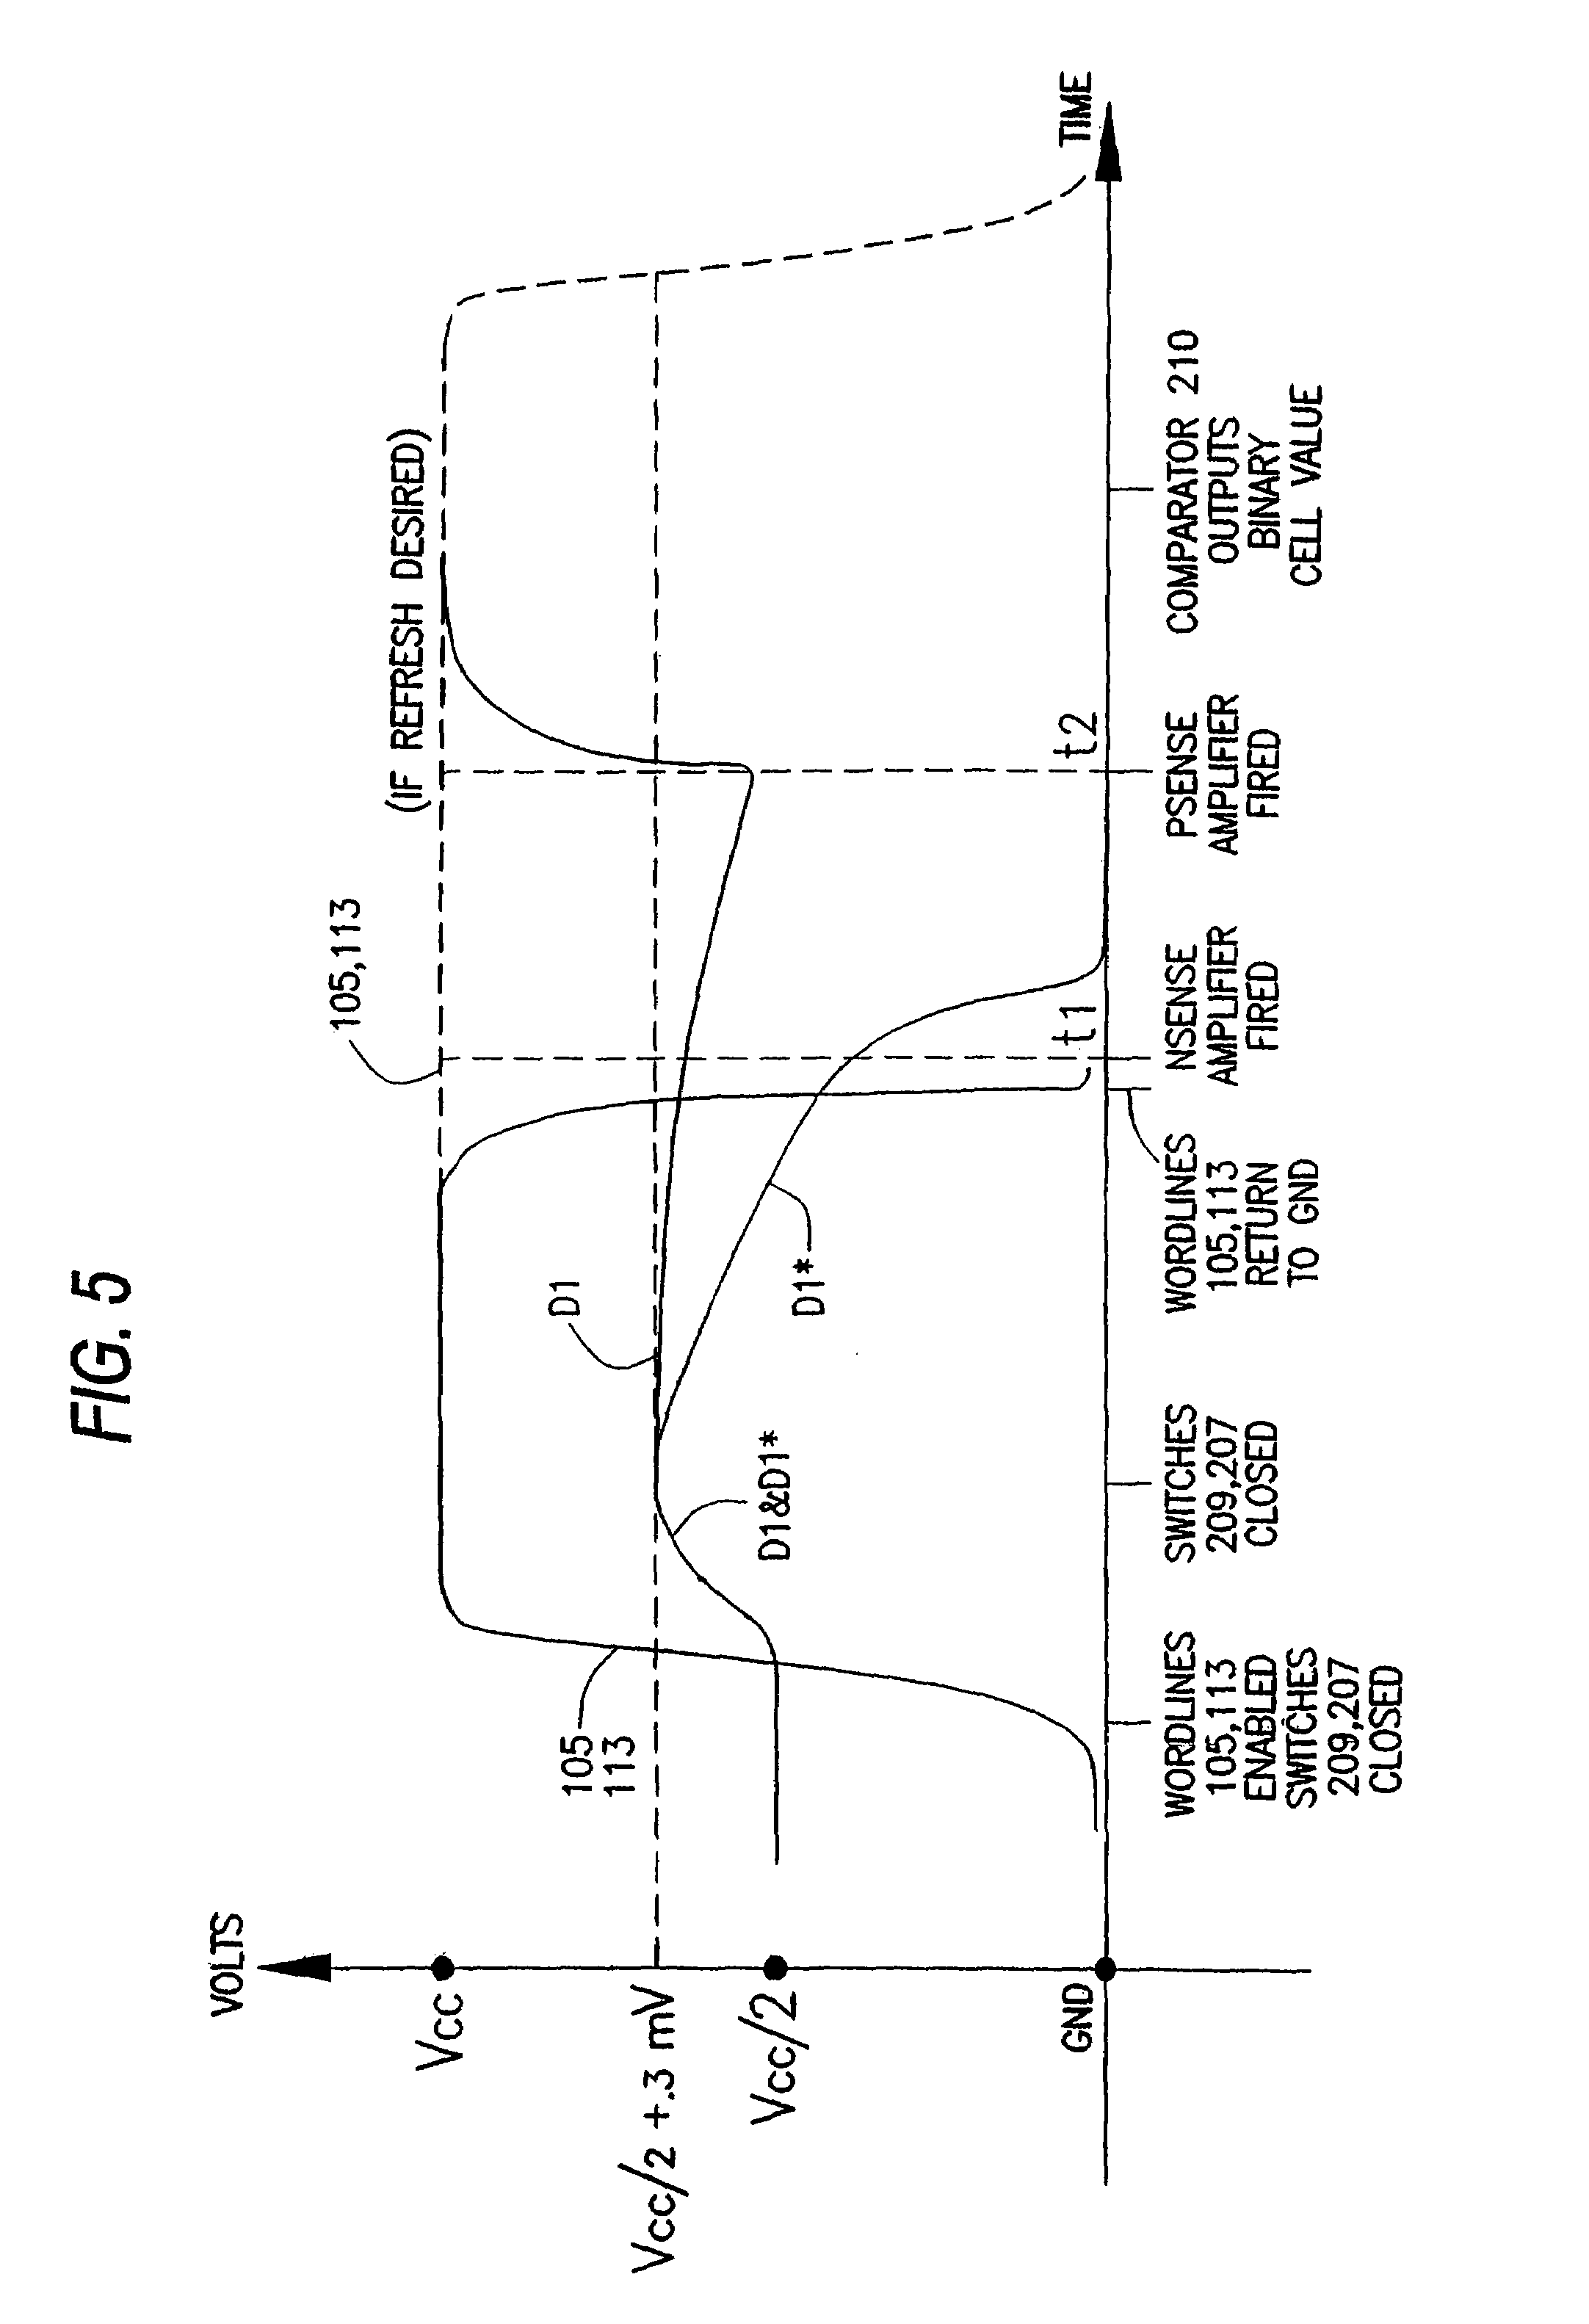 patent us7869249 - complementary bit pcram sense amplifier and method of operation